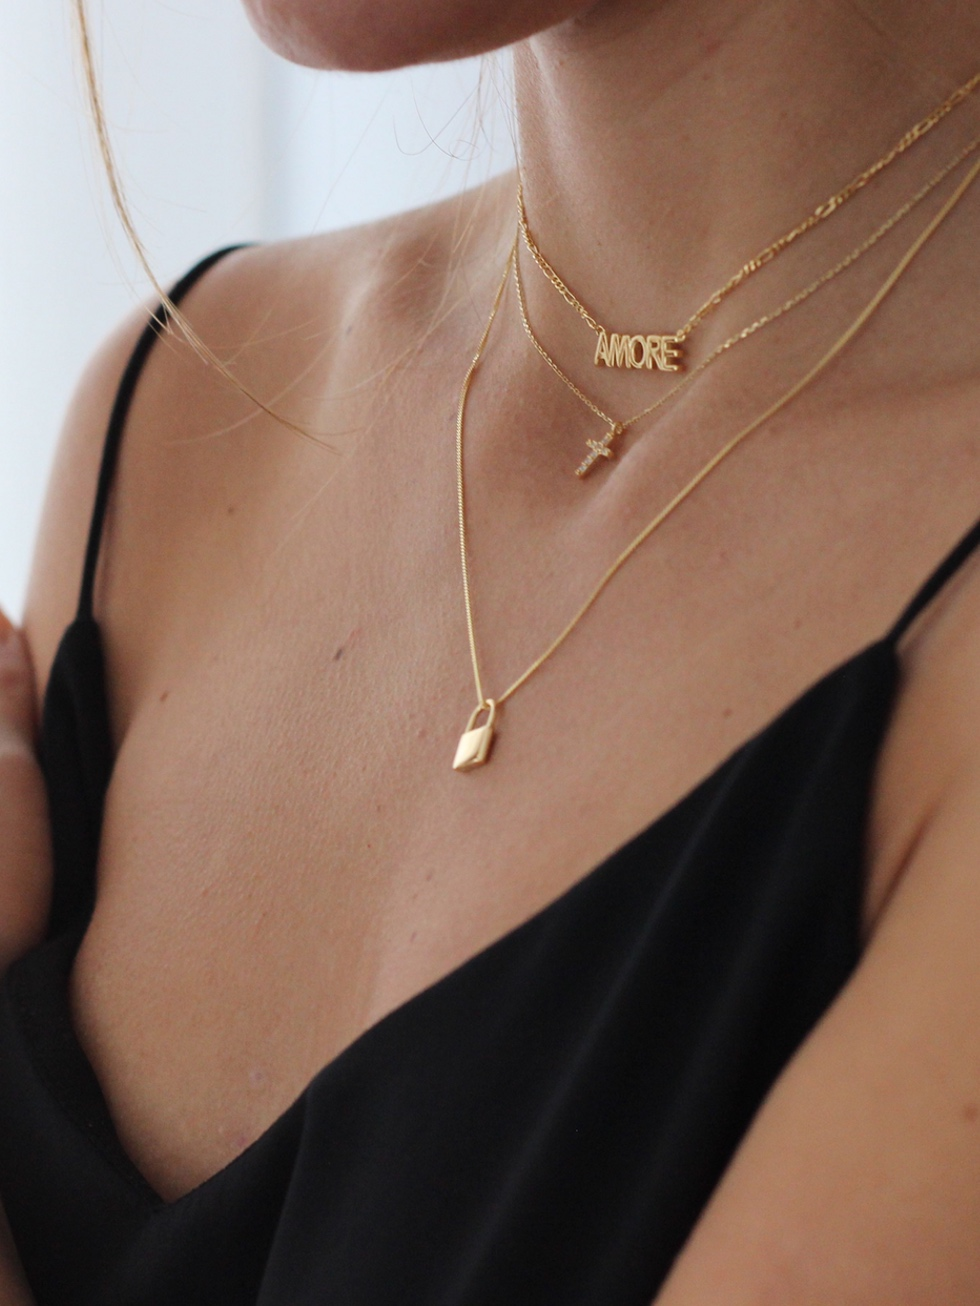 Collar amore gold2